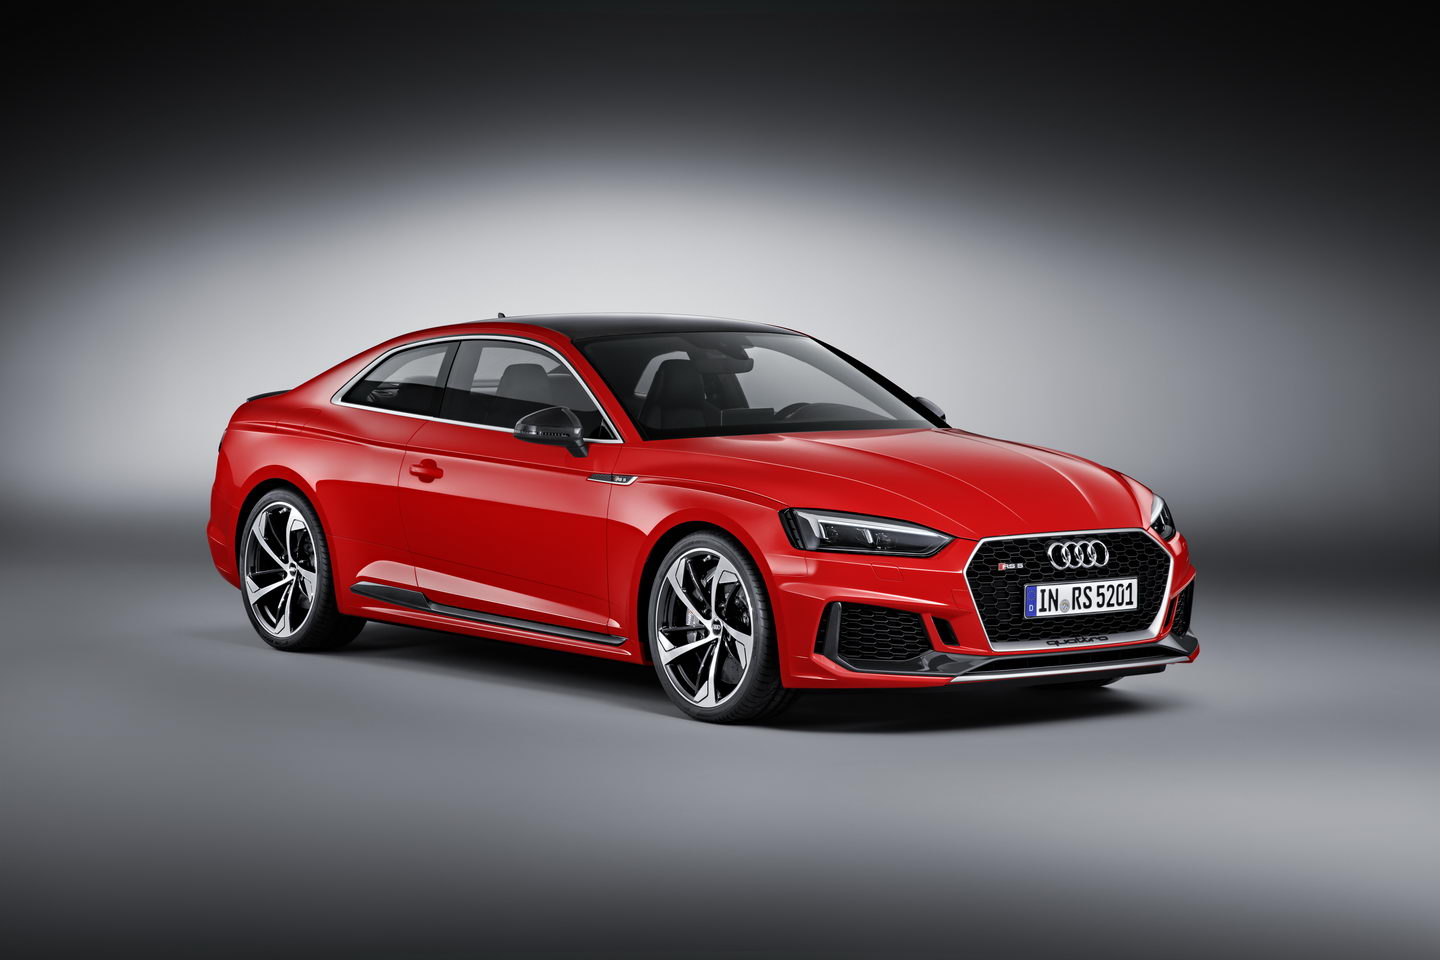 Audi RS 5 Coupe 2018 21